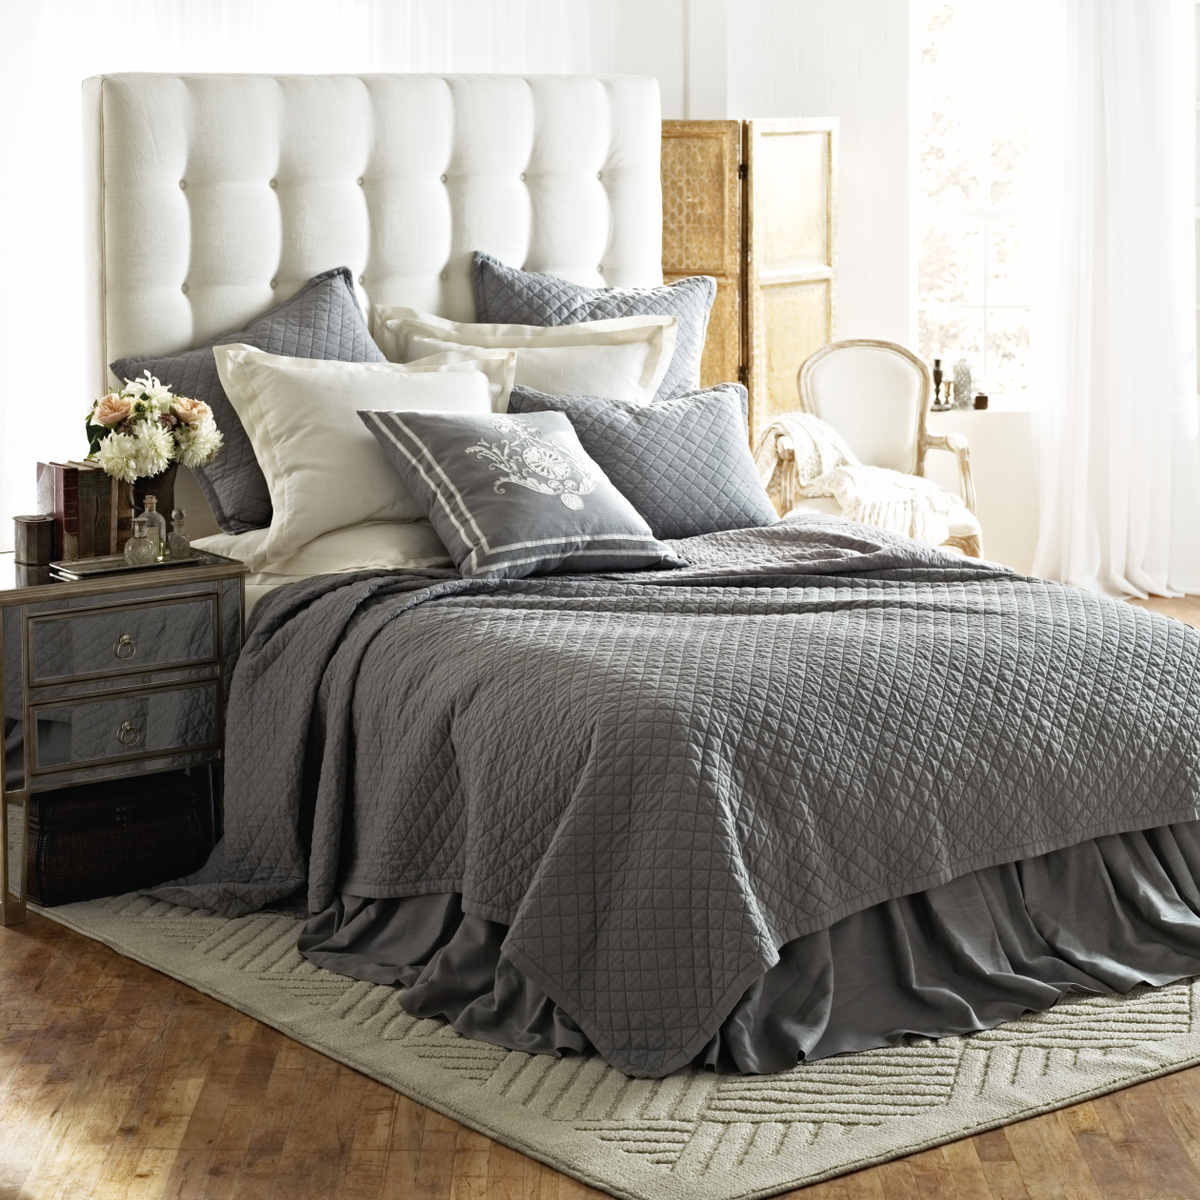 Image of: Gray Bed Skirt Set